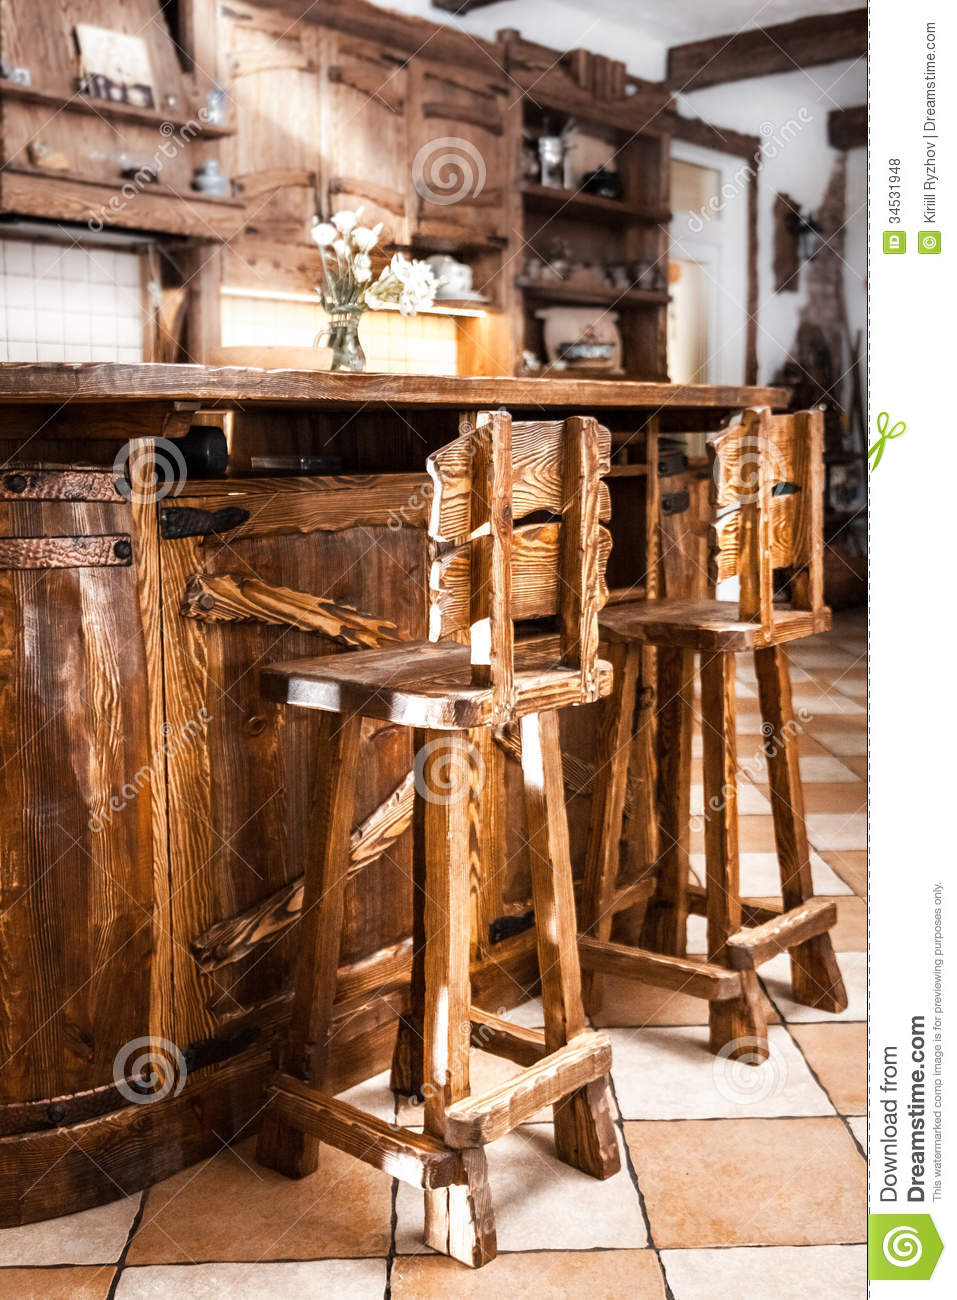 Two High Wooden Bar Chairs In Country Style Royalty Free  : two high wooden bar chairs country style interior 34531948 from www.dreamstime.com size 957 x 1300 jpeg 212kB